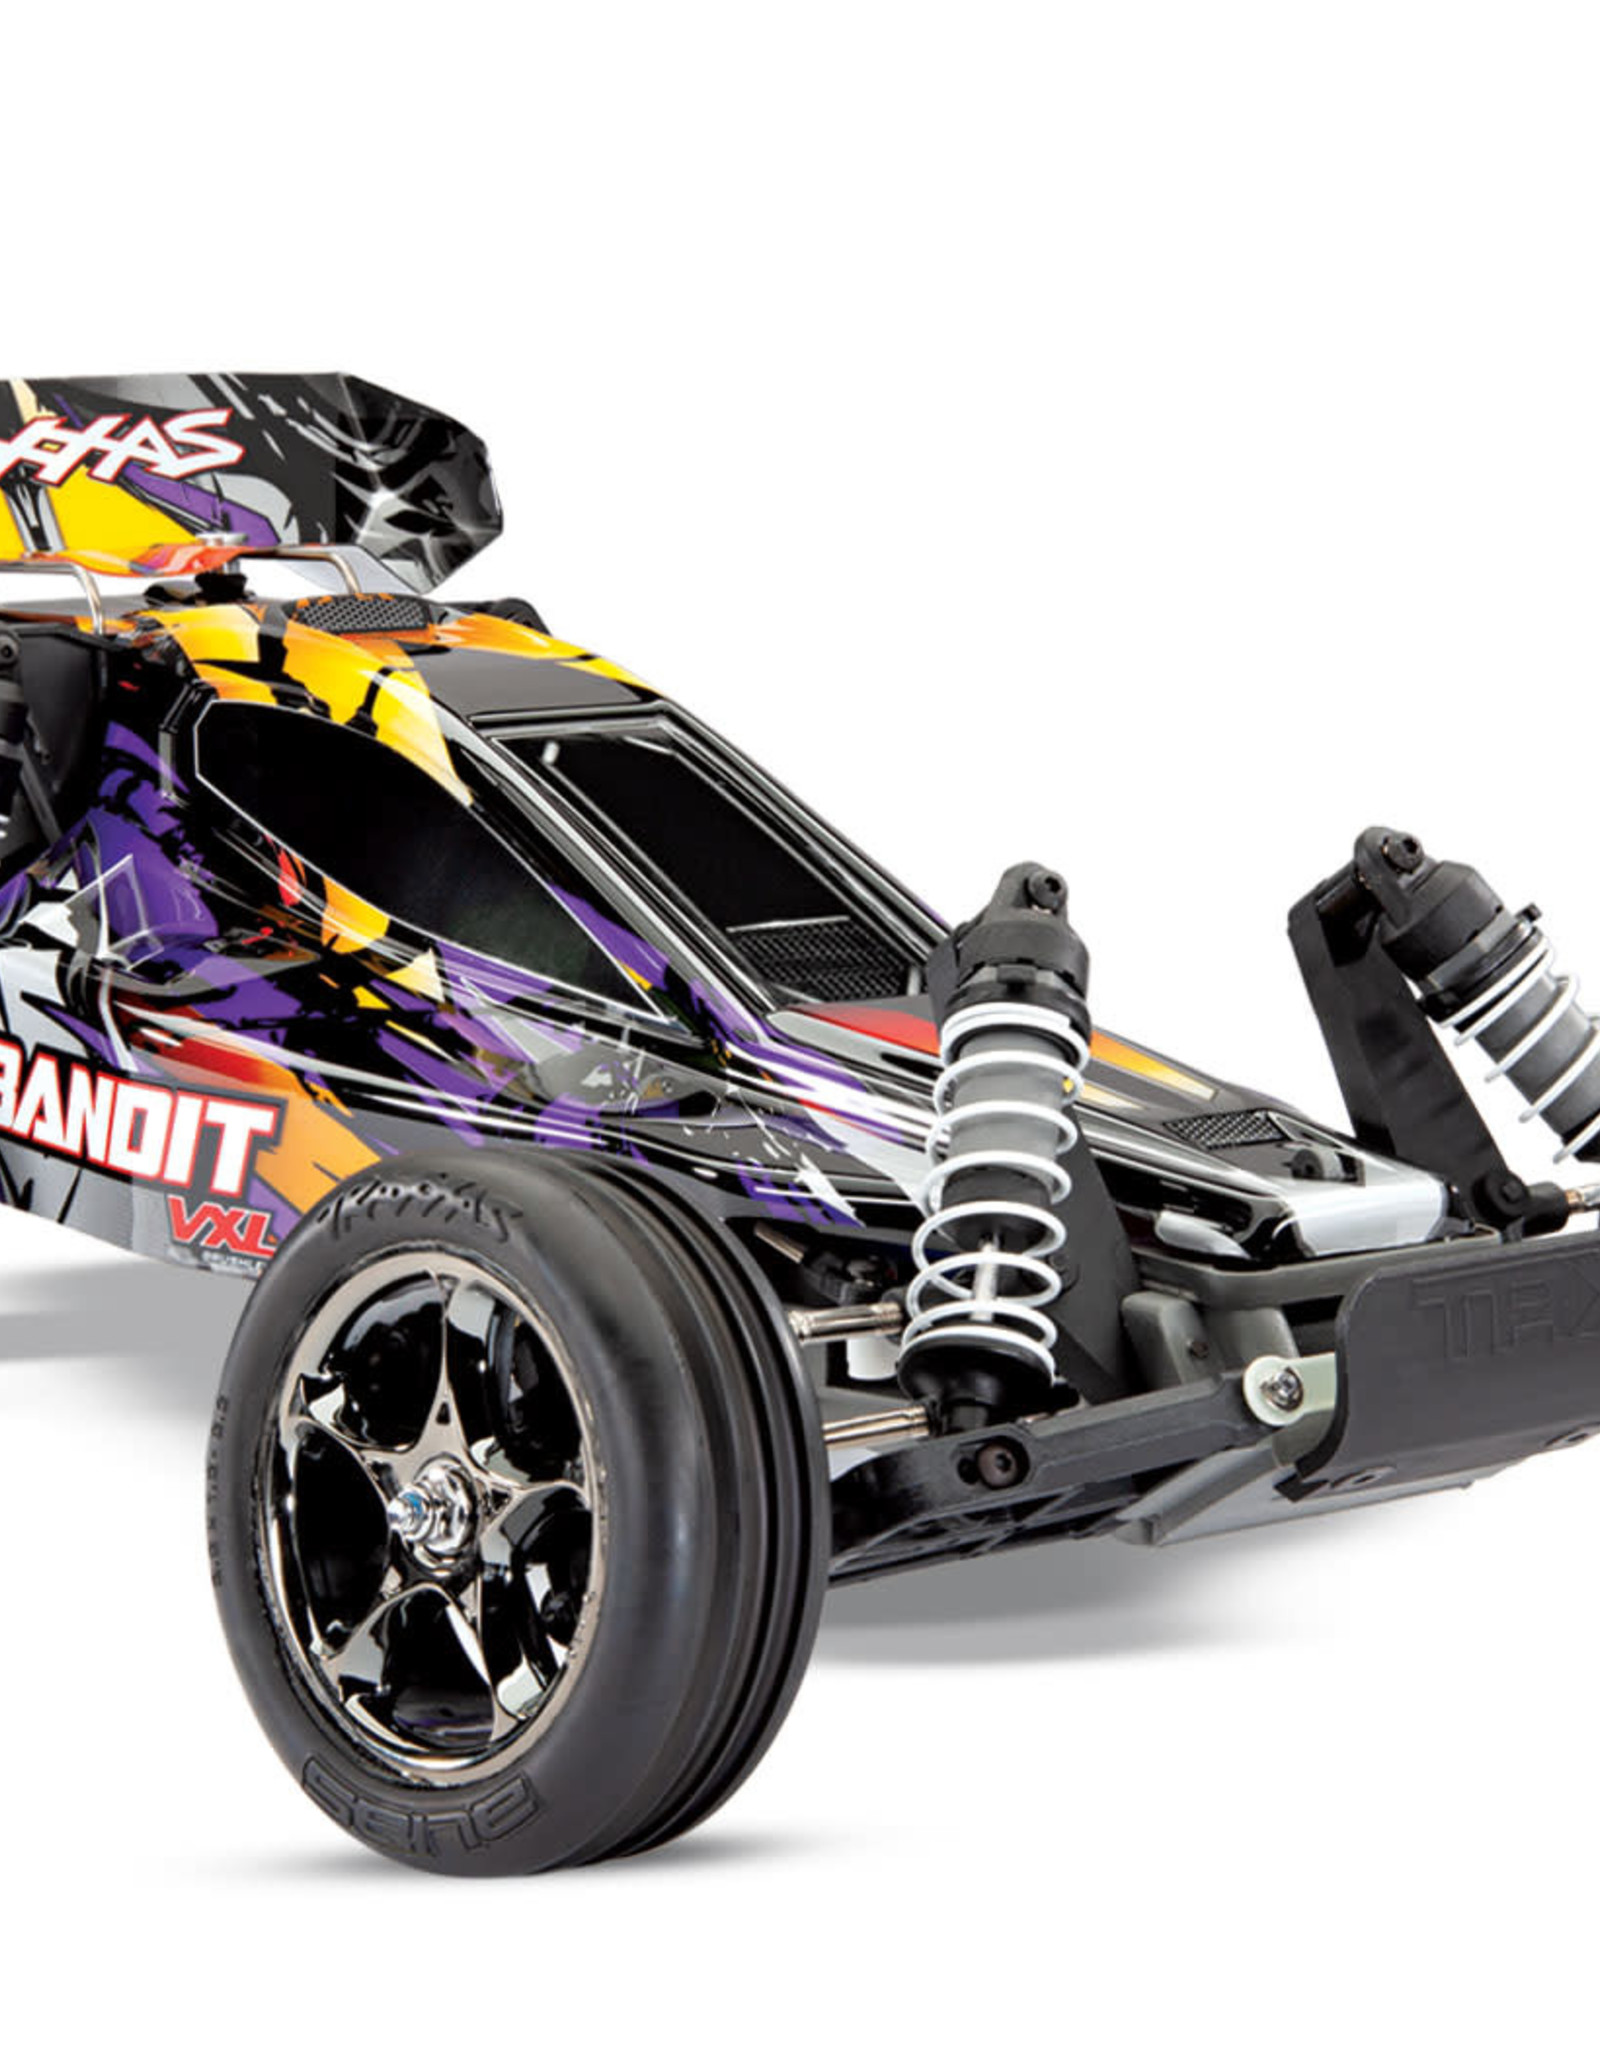 Traxxas TRA4076-4 Purple Bandit VXL 1/10 Scale off road Buggy with Stability Management No Battery